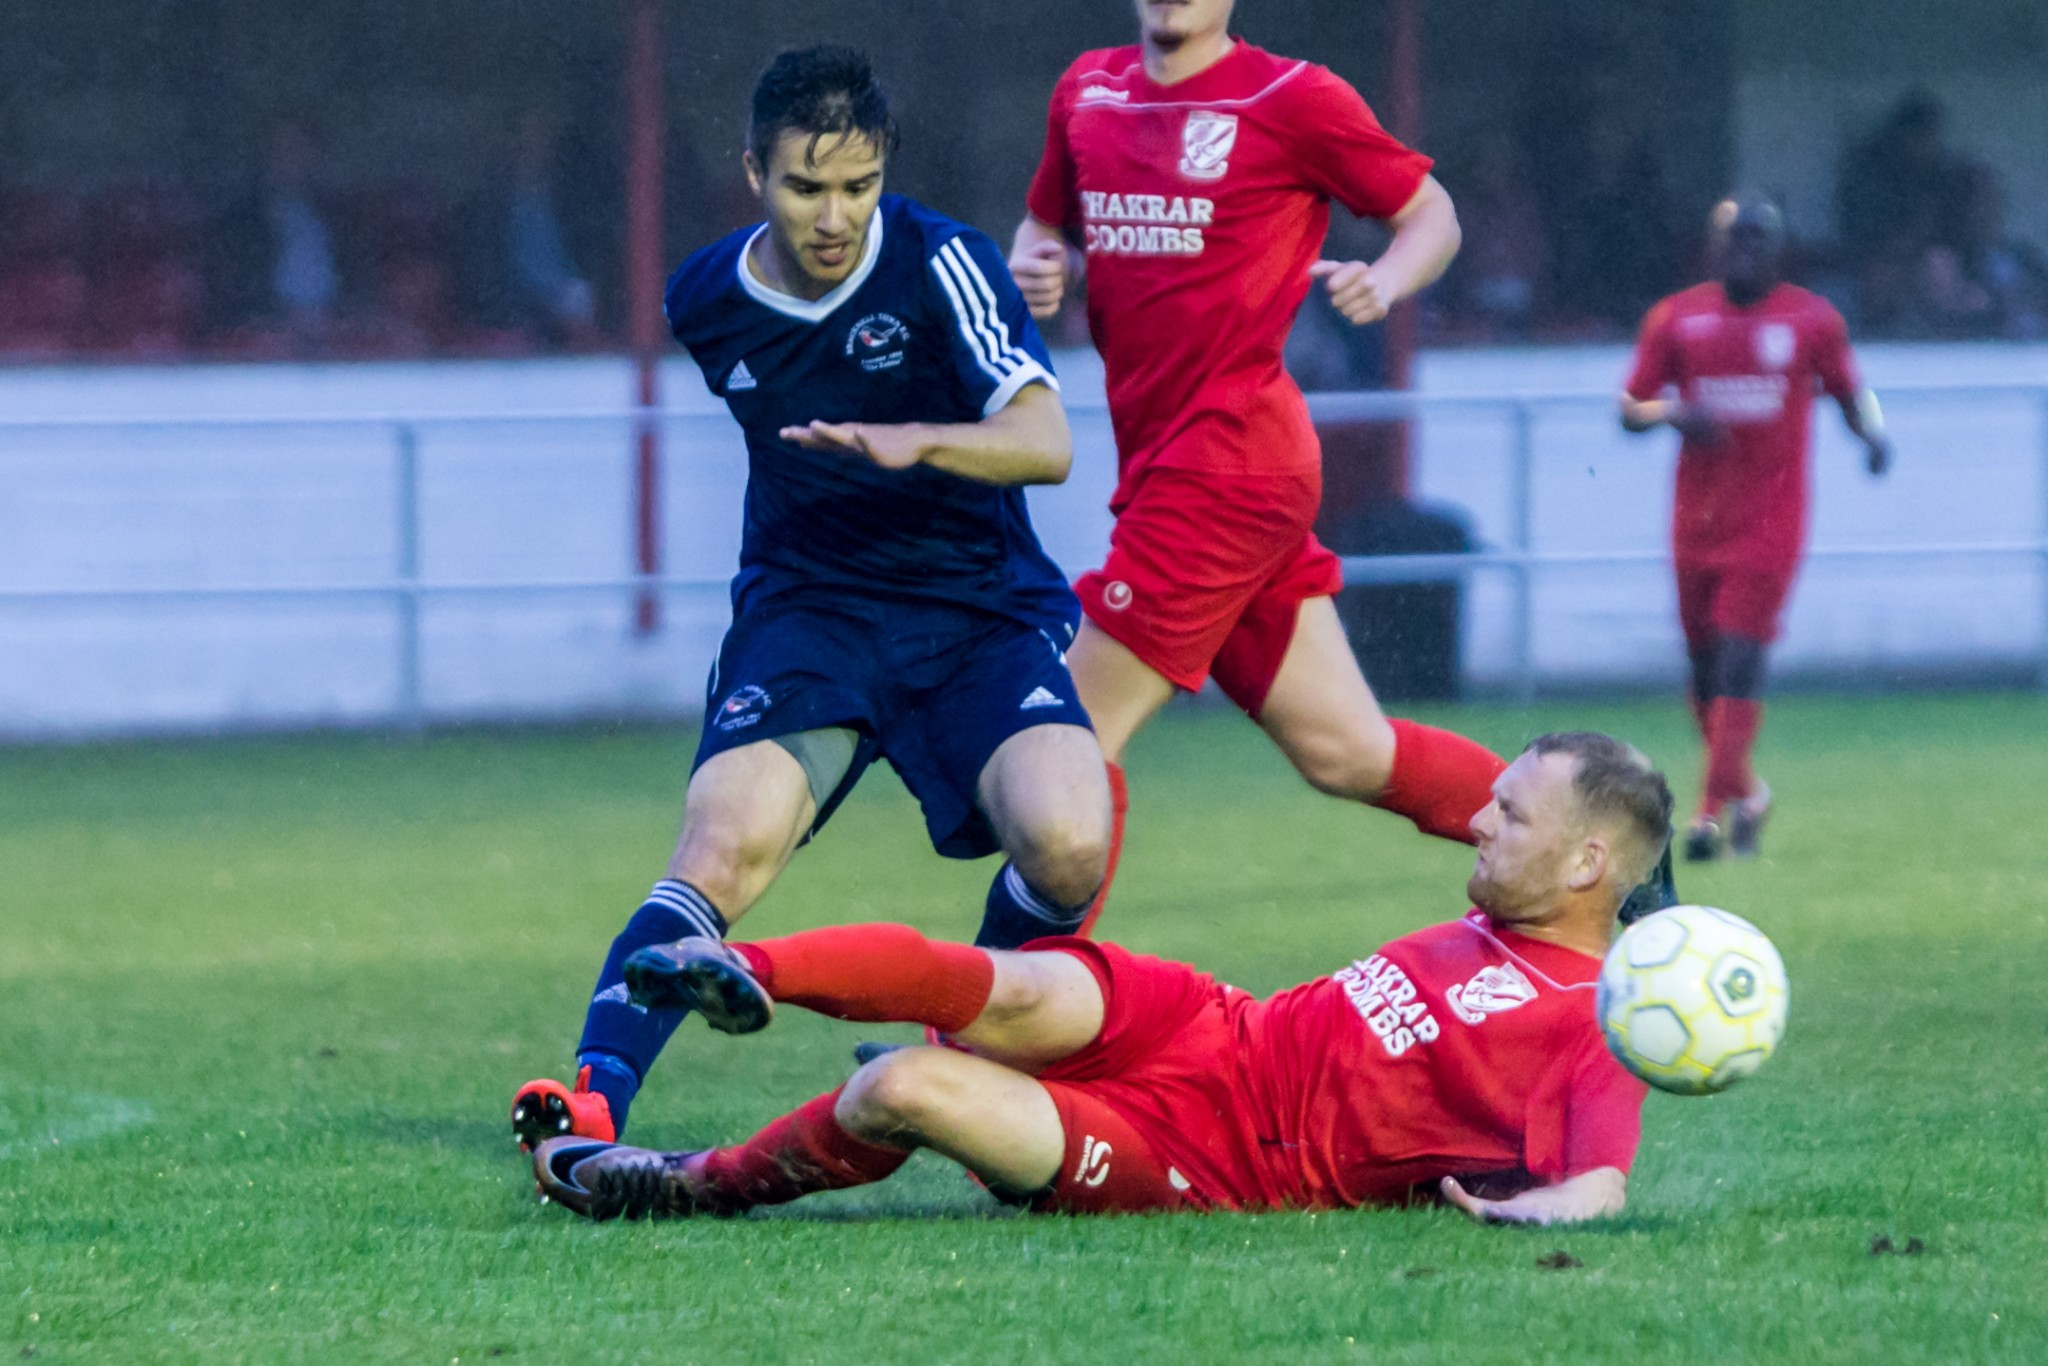 Flackwell 3 Bracknell 1: Defensive frailties cost Robins on opening day